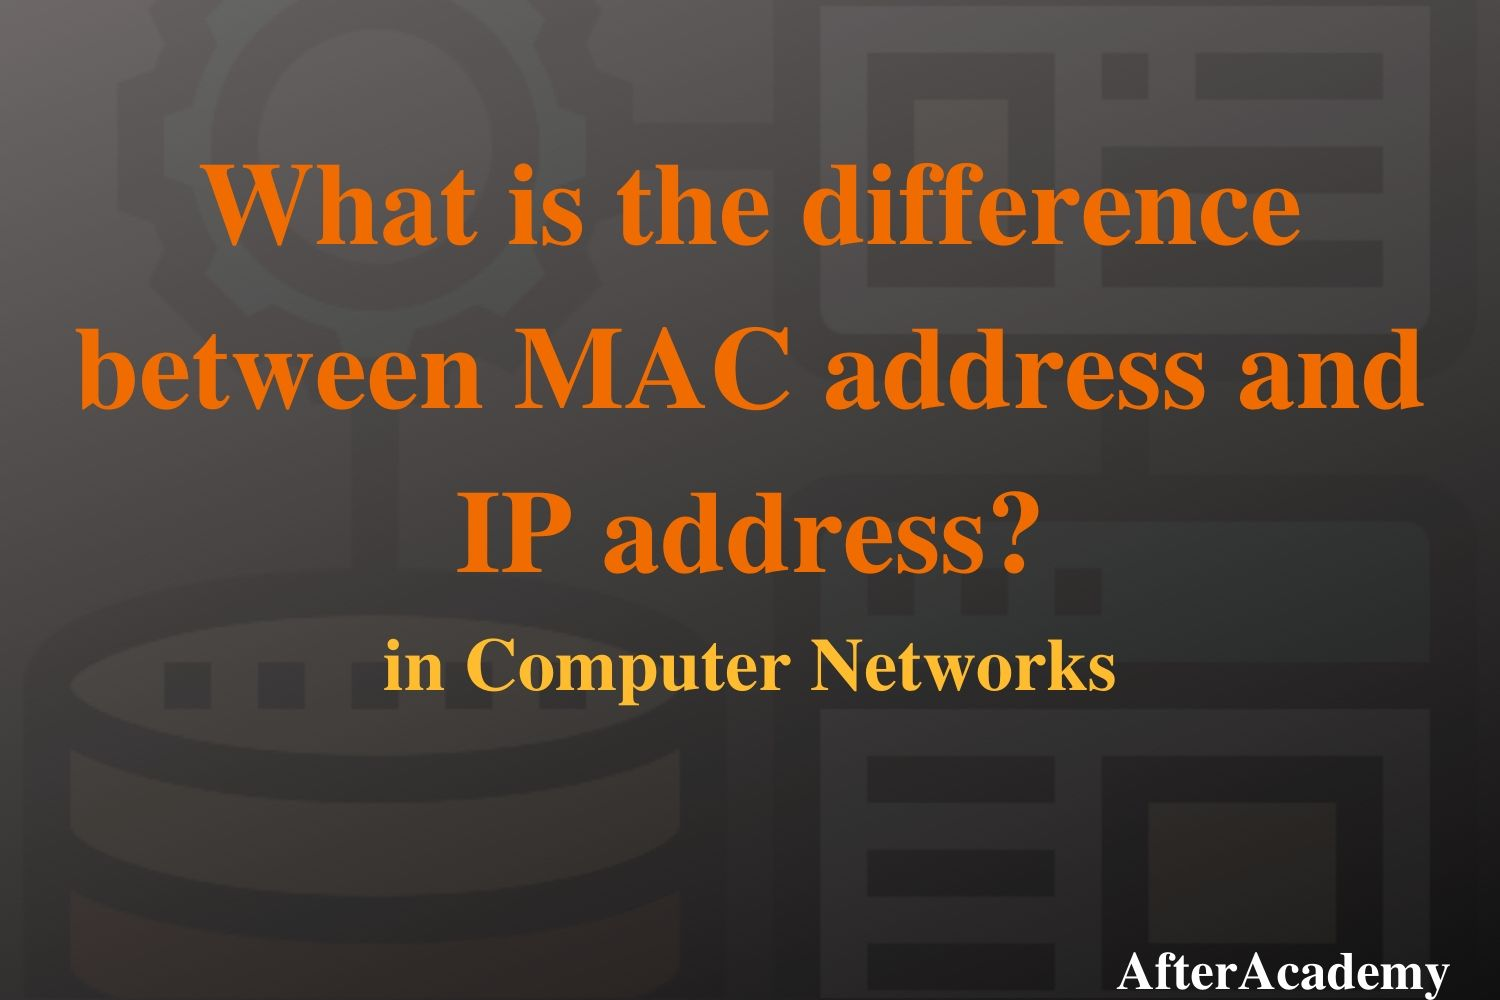 What is the difference between MAC address and IP address?